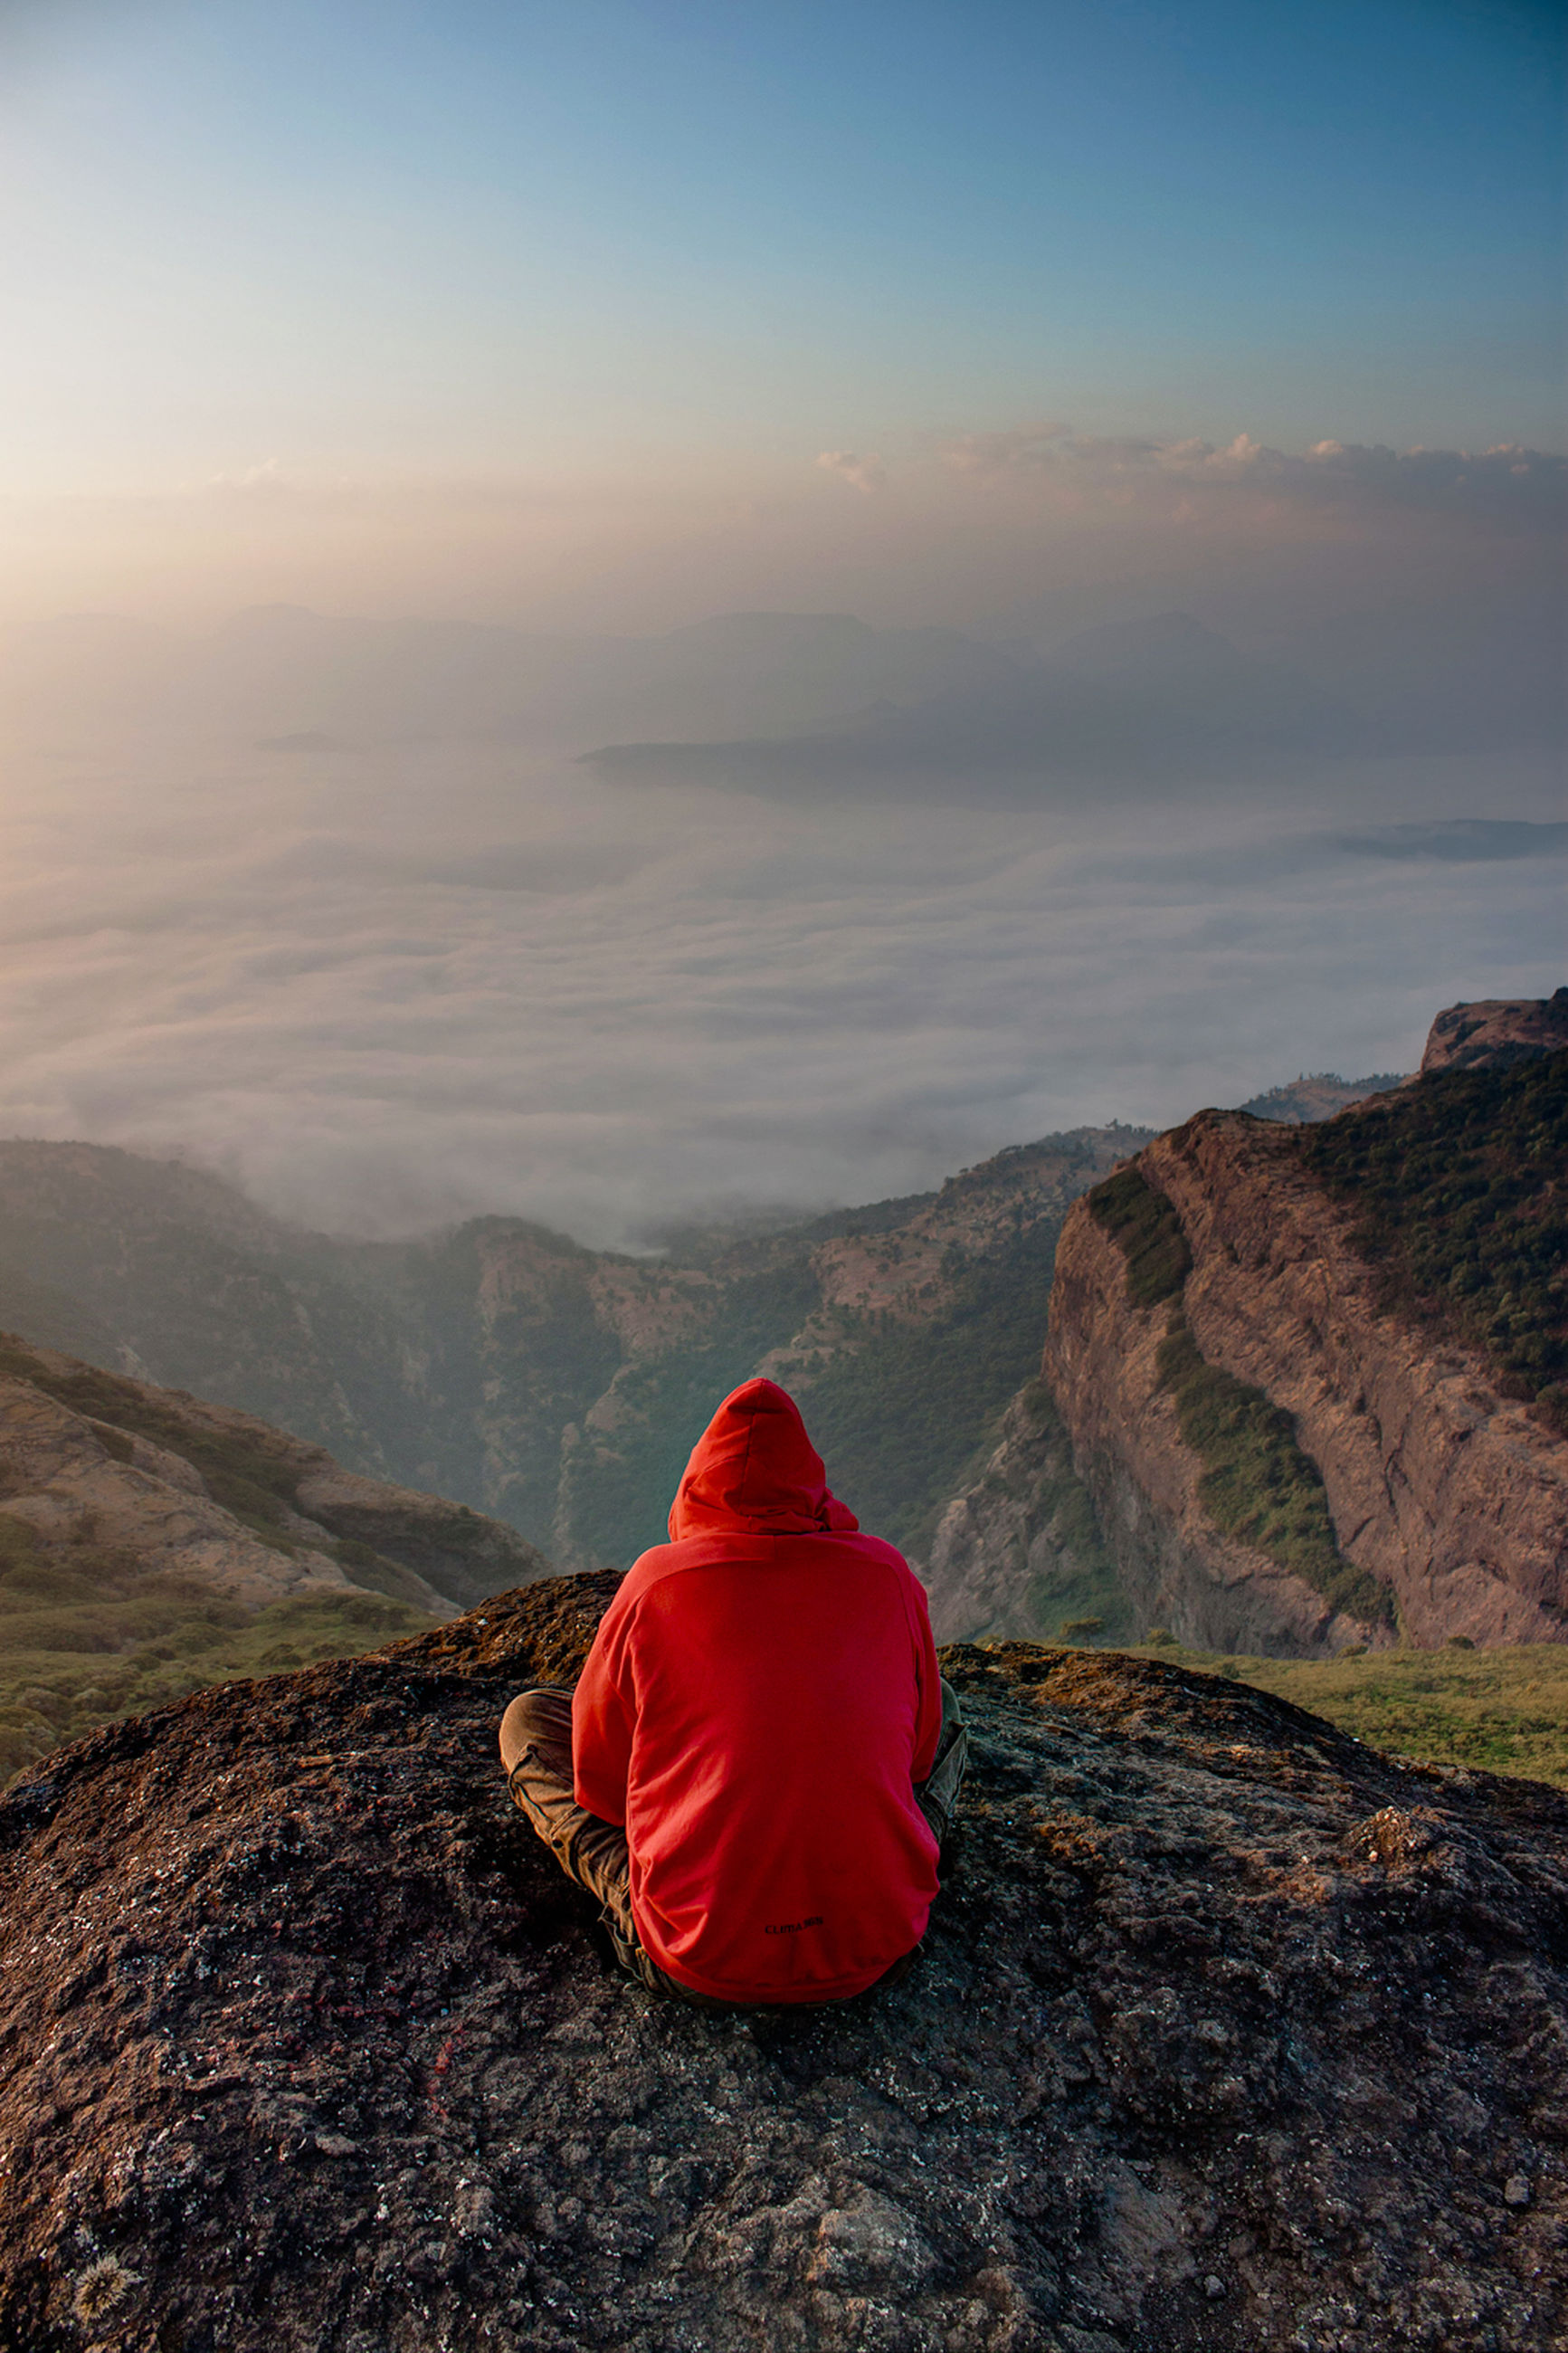 rear view, beauty in nature, sky, scenics - nature, tranquility, tranquil scene, mountain, one person, rock, non-urban scene, real people, rock - object, solid, cloud - sky, nature, red, idyllic, environment, sitting, remote, mountain range, outdoors, hood - clothing, looking at view